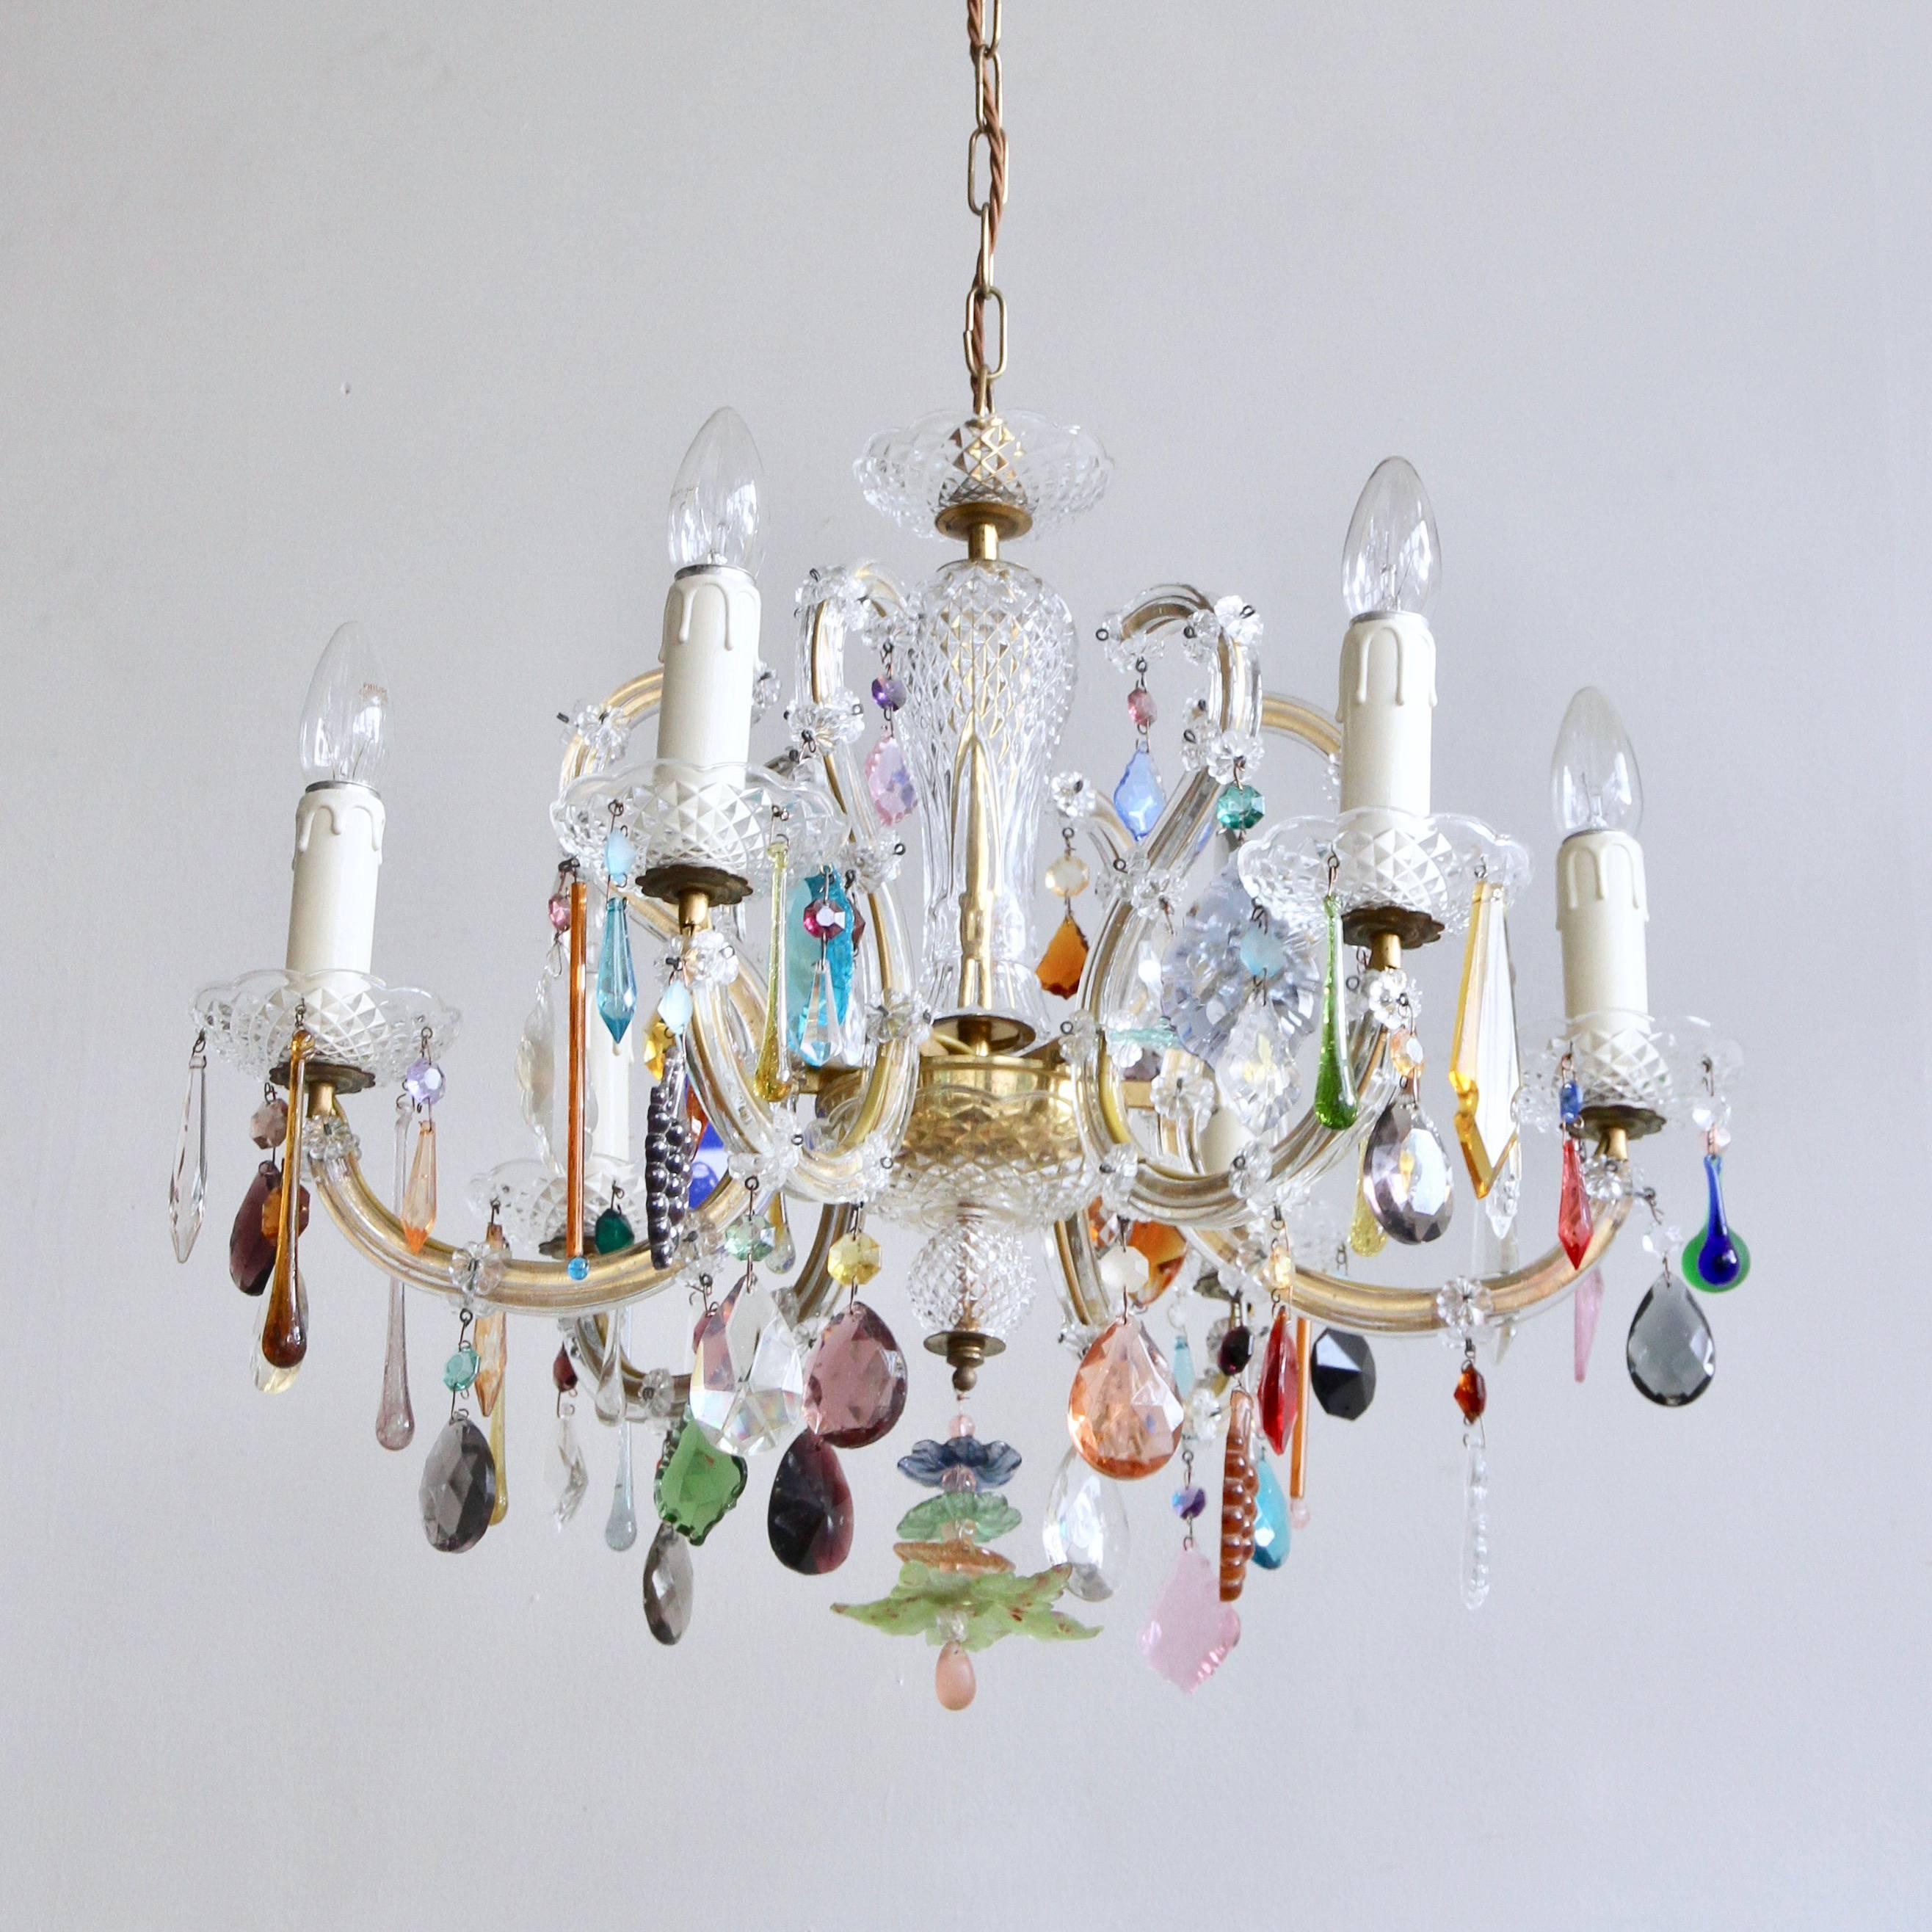 French glass marie thrse chandelier with multicolored drops for french glass marie thrse chandelier with multicolored drops for sale at 1stdibs arubaitofo Gallery